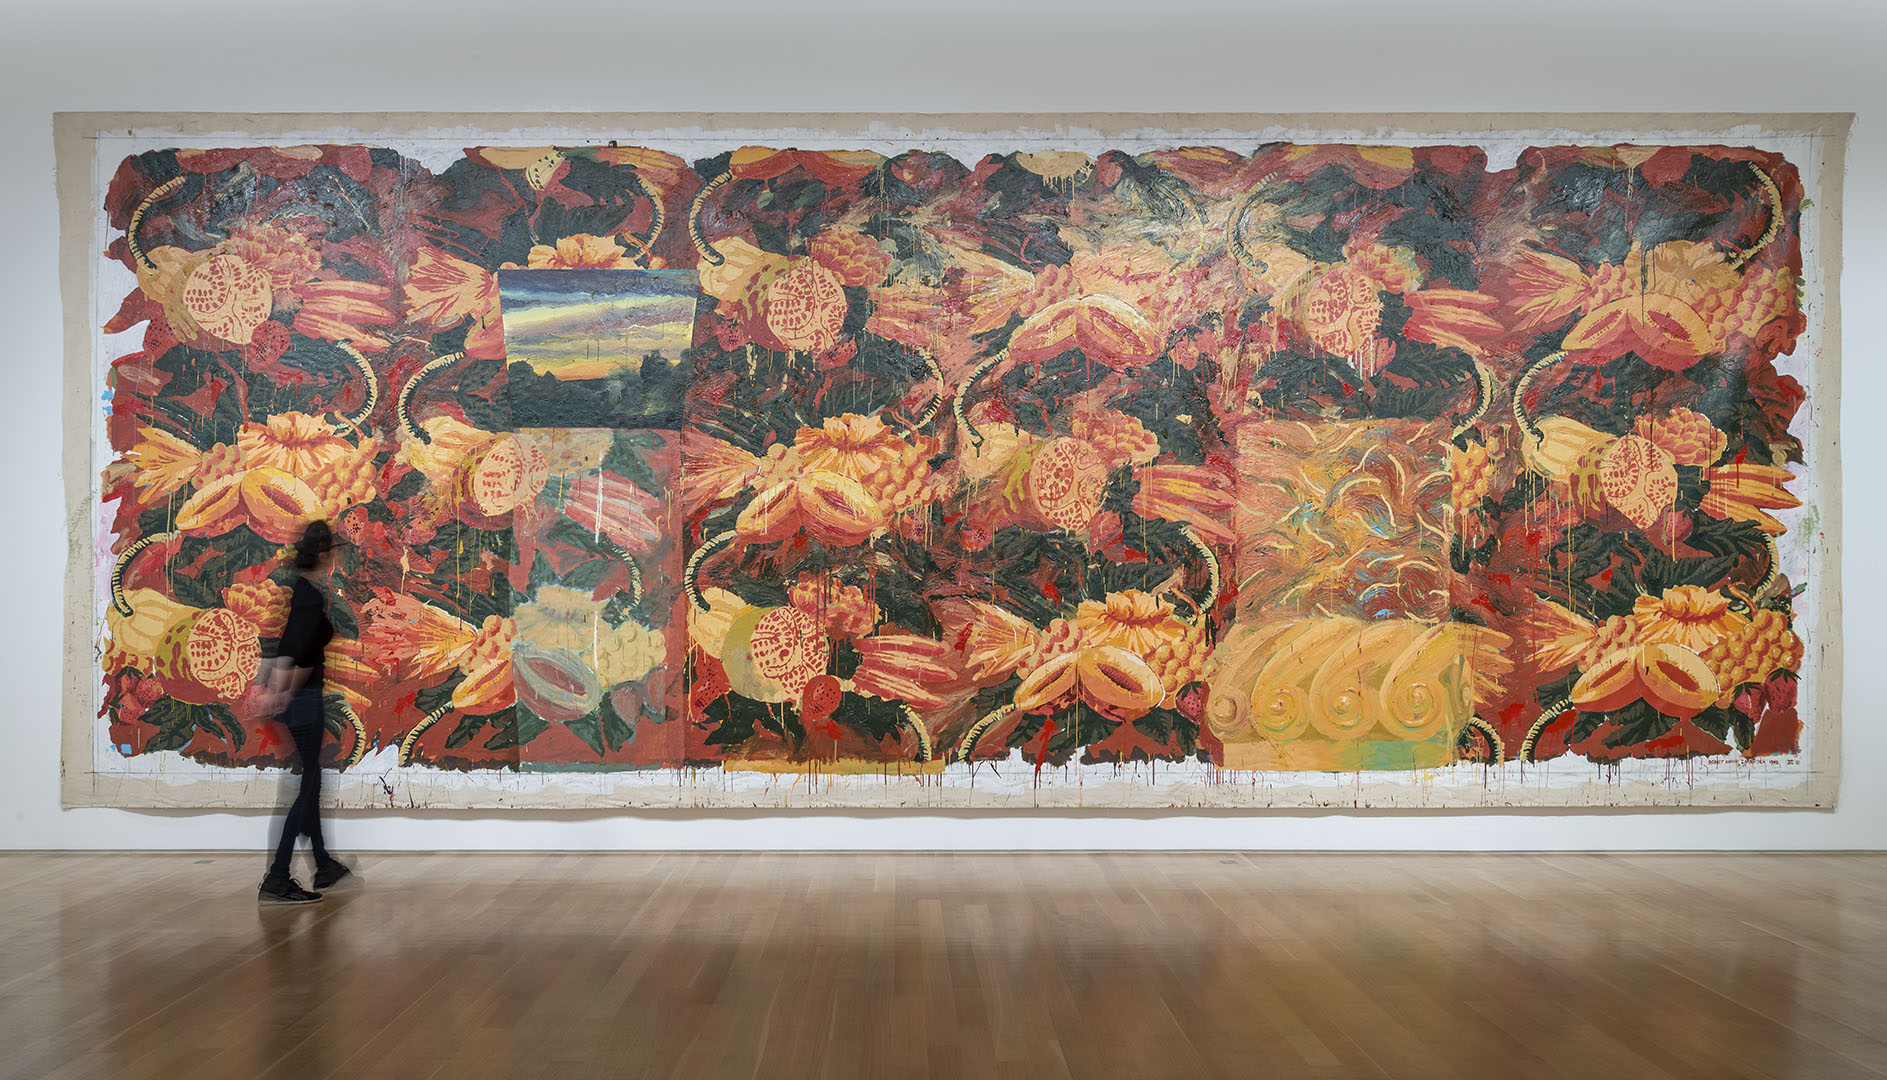 Big Bungalow Suite III , 1991-92, Acrylic on canvas, 11 x 30 ft. Collection of the Artist. (Installation View: The Nerman Museum of Contemporary Art, OverlandPark, KS, 2015